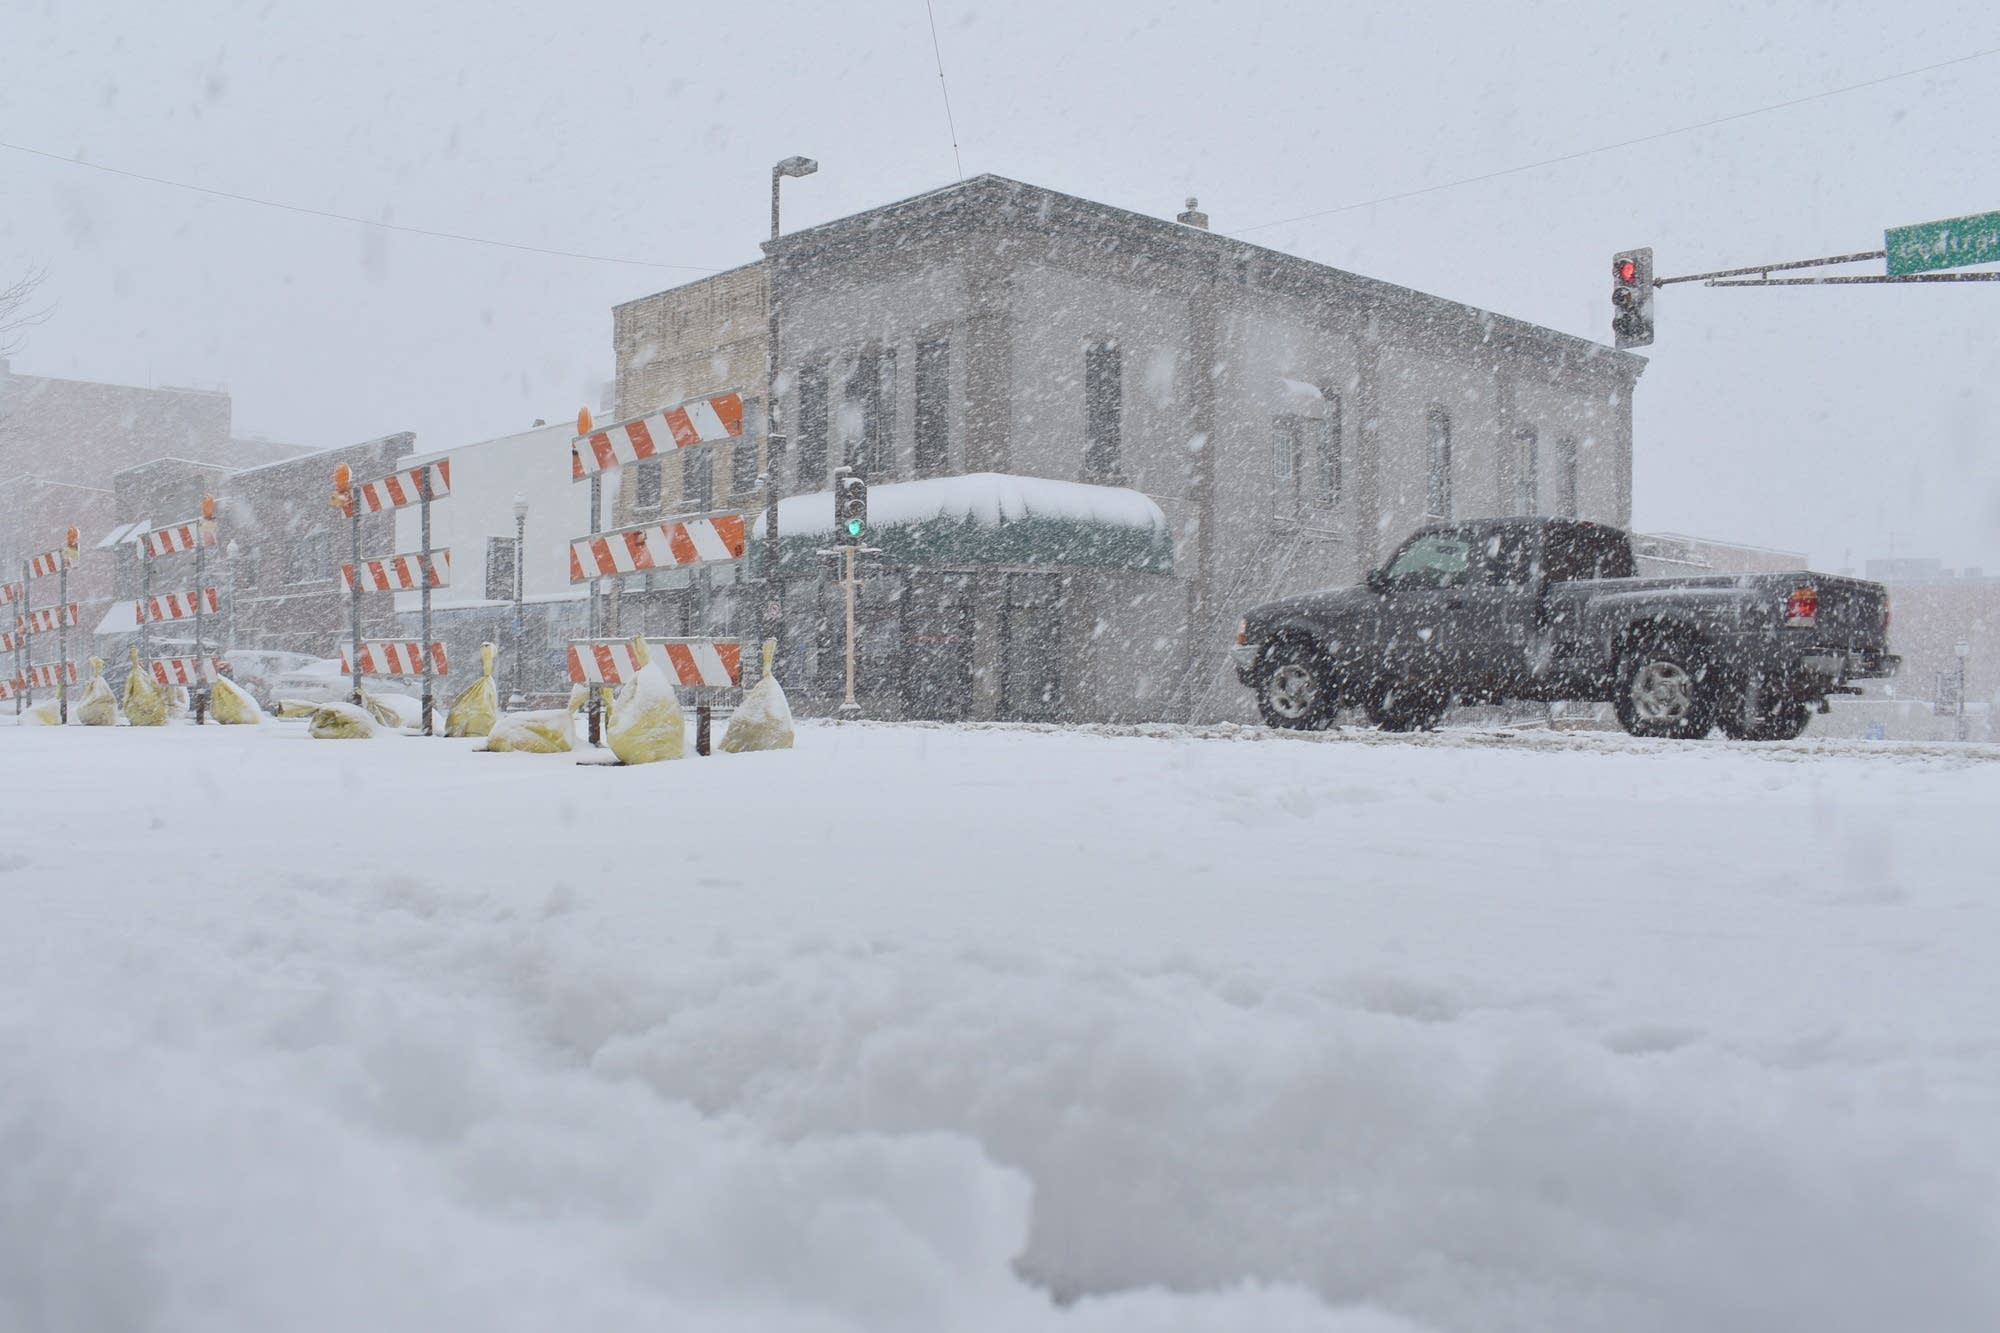 Snow falls at a heavy rate in Faribault, Minn. on Wednesday.